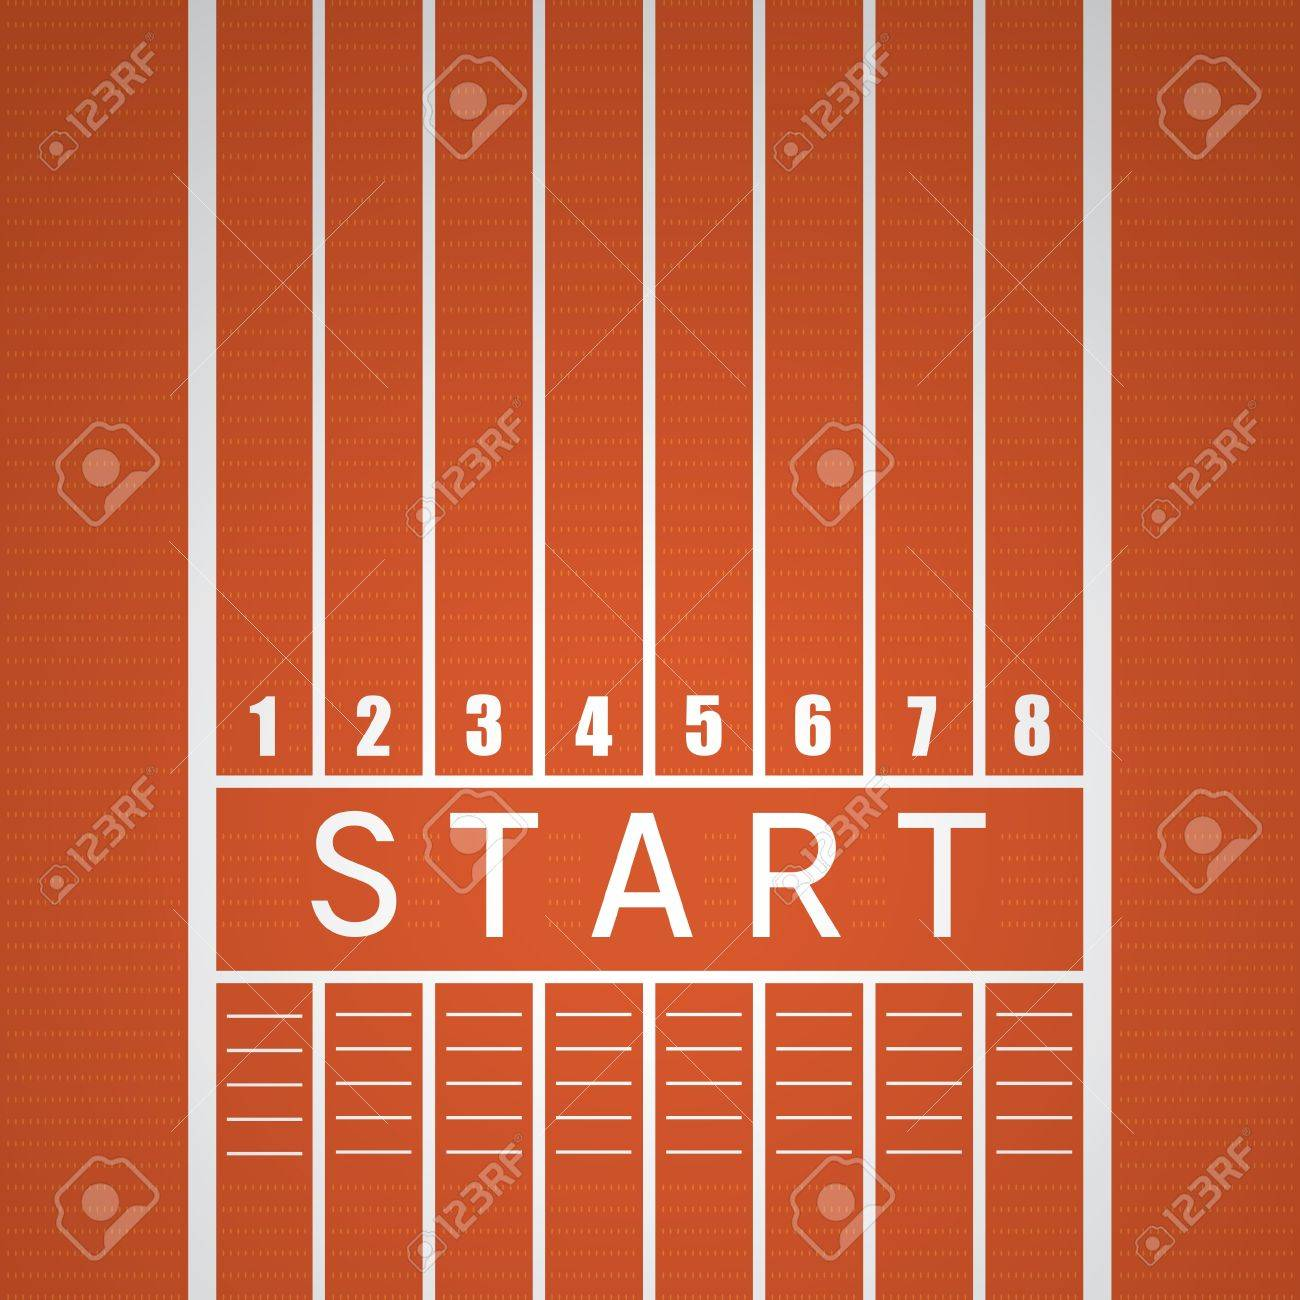 Start track  line on a red running track. Stock Vector - 14445497